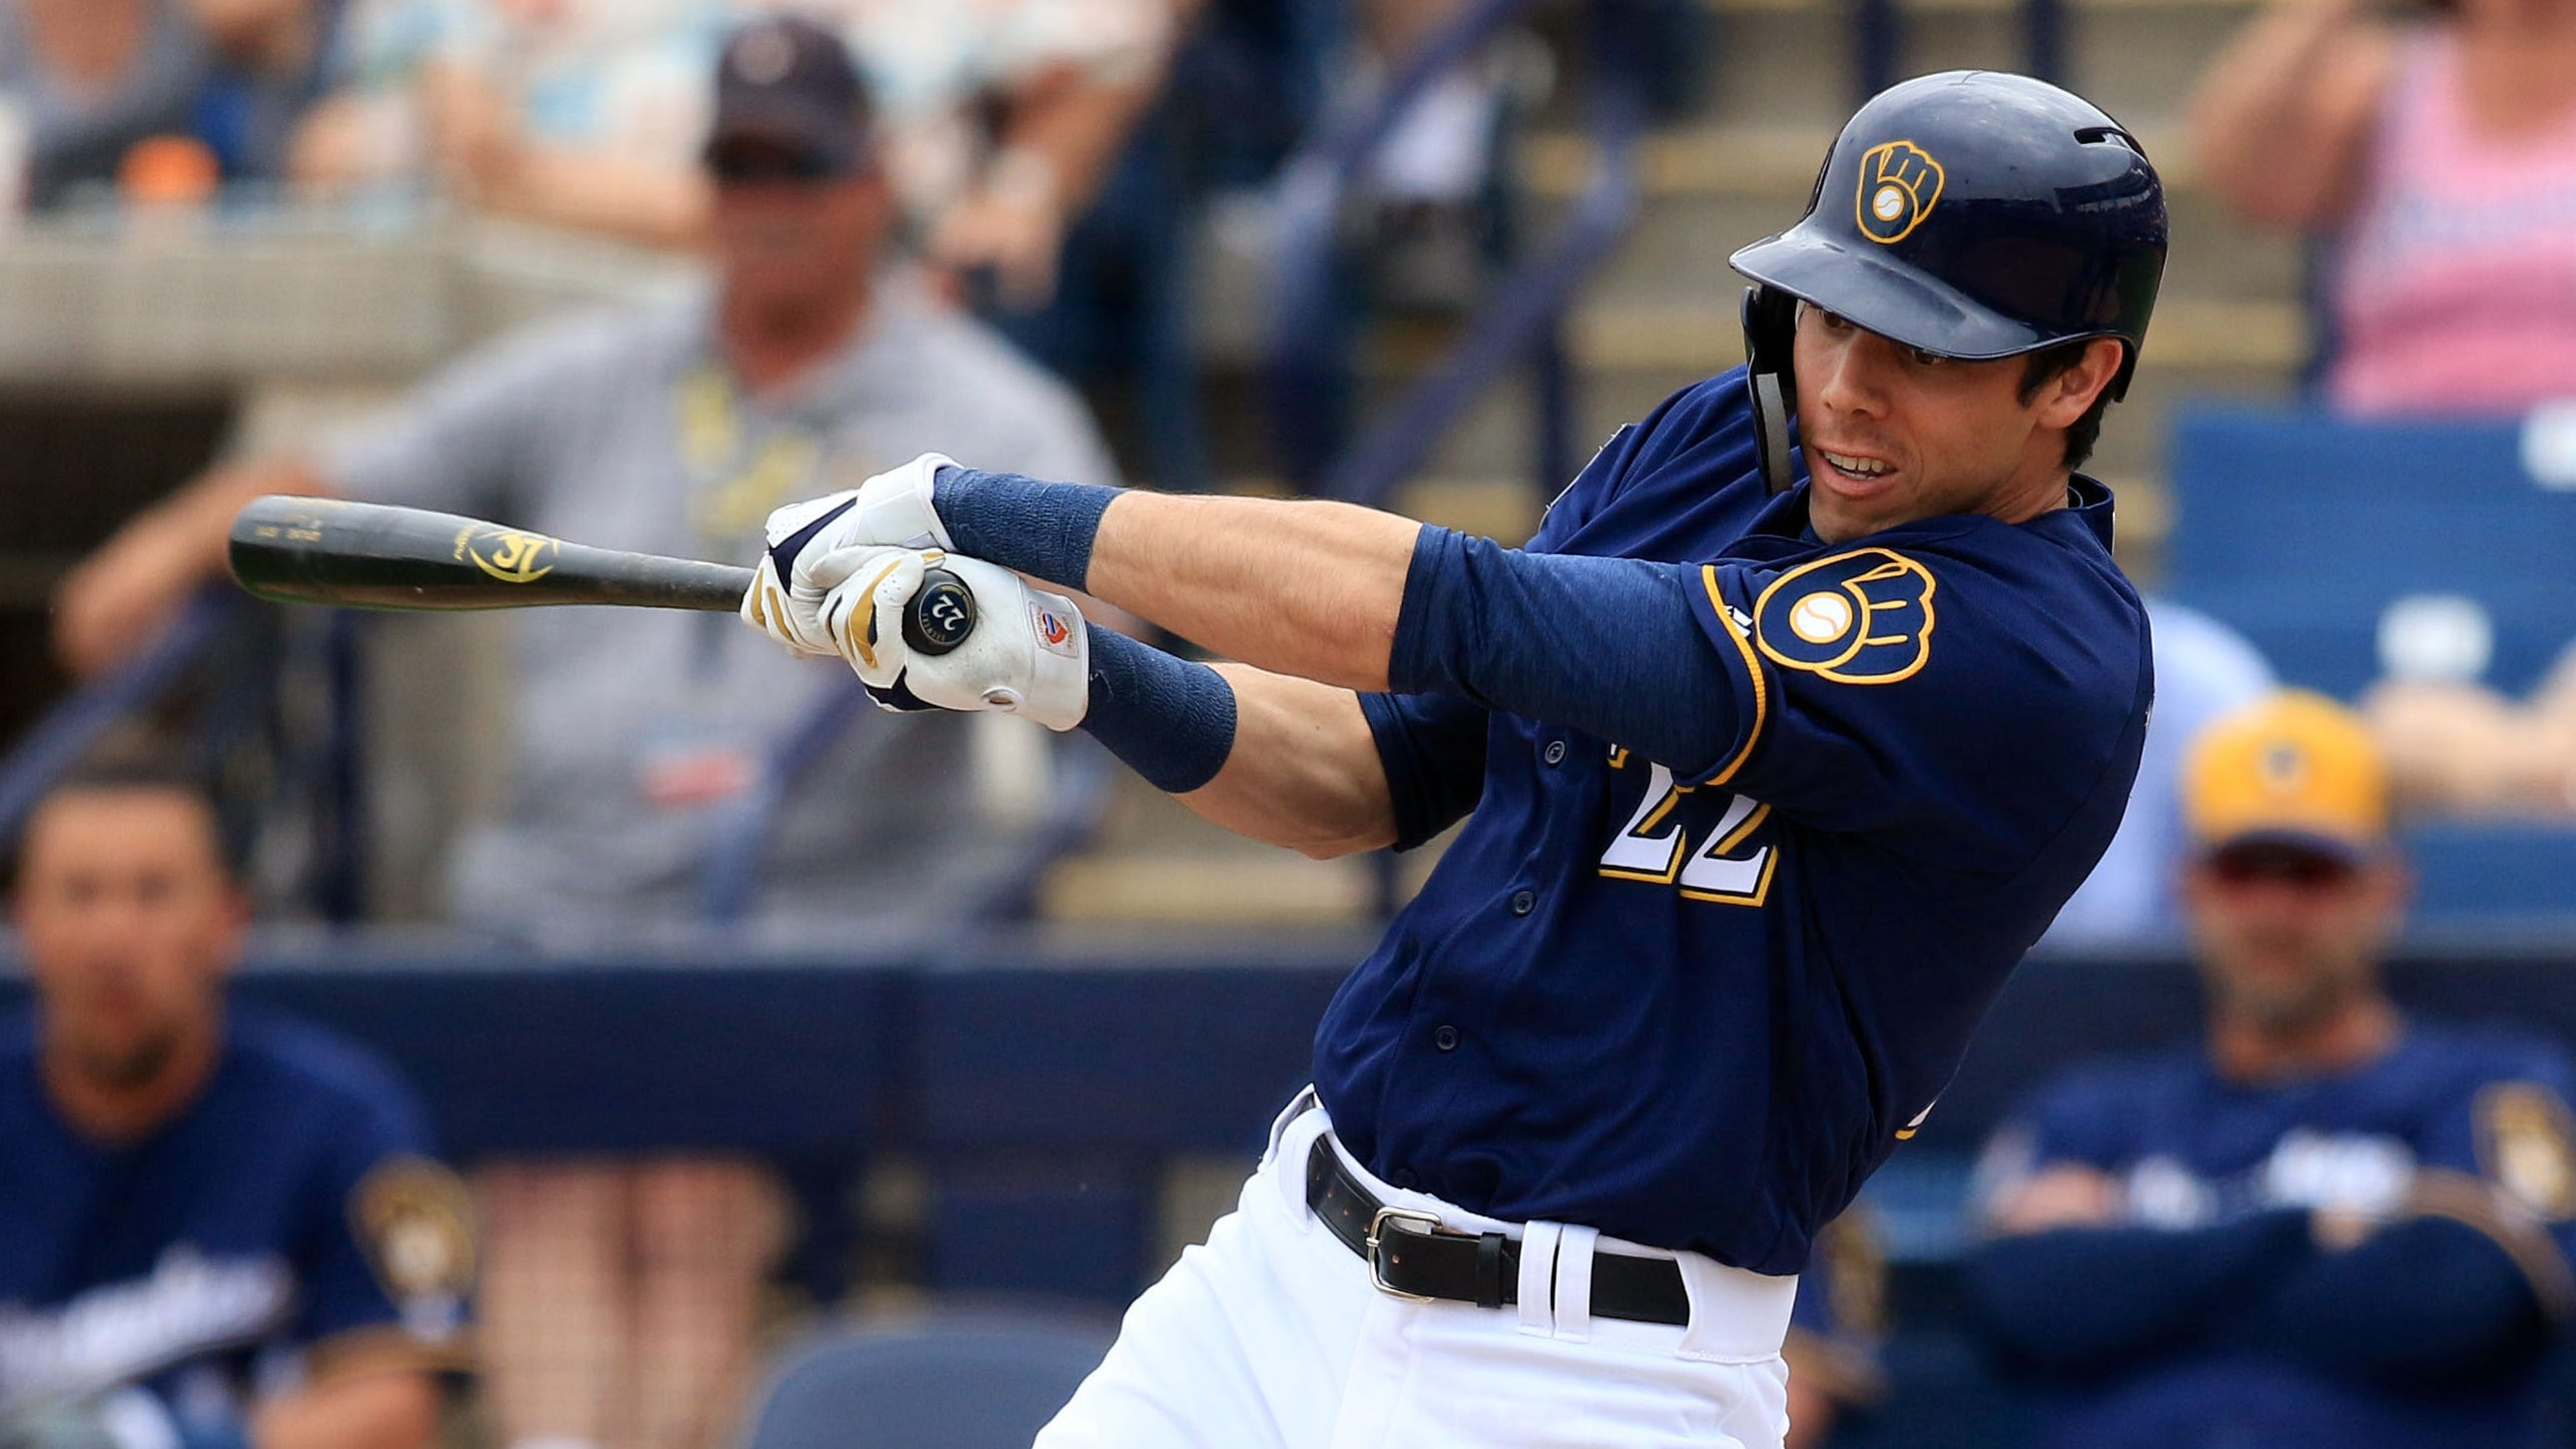 Milwauke Brewers Christain Yelich follows through on a swing during their spring training game against the Los Angeles Dodgers, Thursday, March 21, 2019, in Phoenix, Arizona.(Photo/Roy Dabner) ORG XMIT: RD255